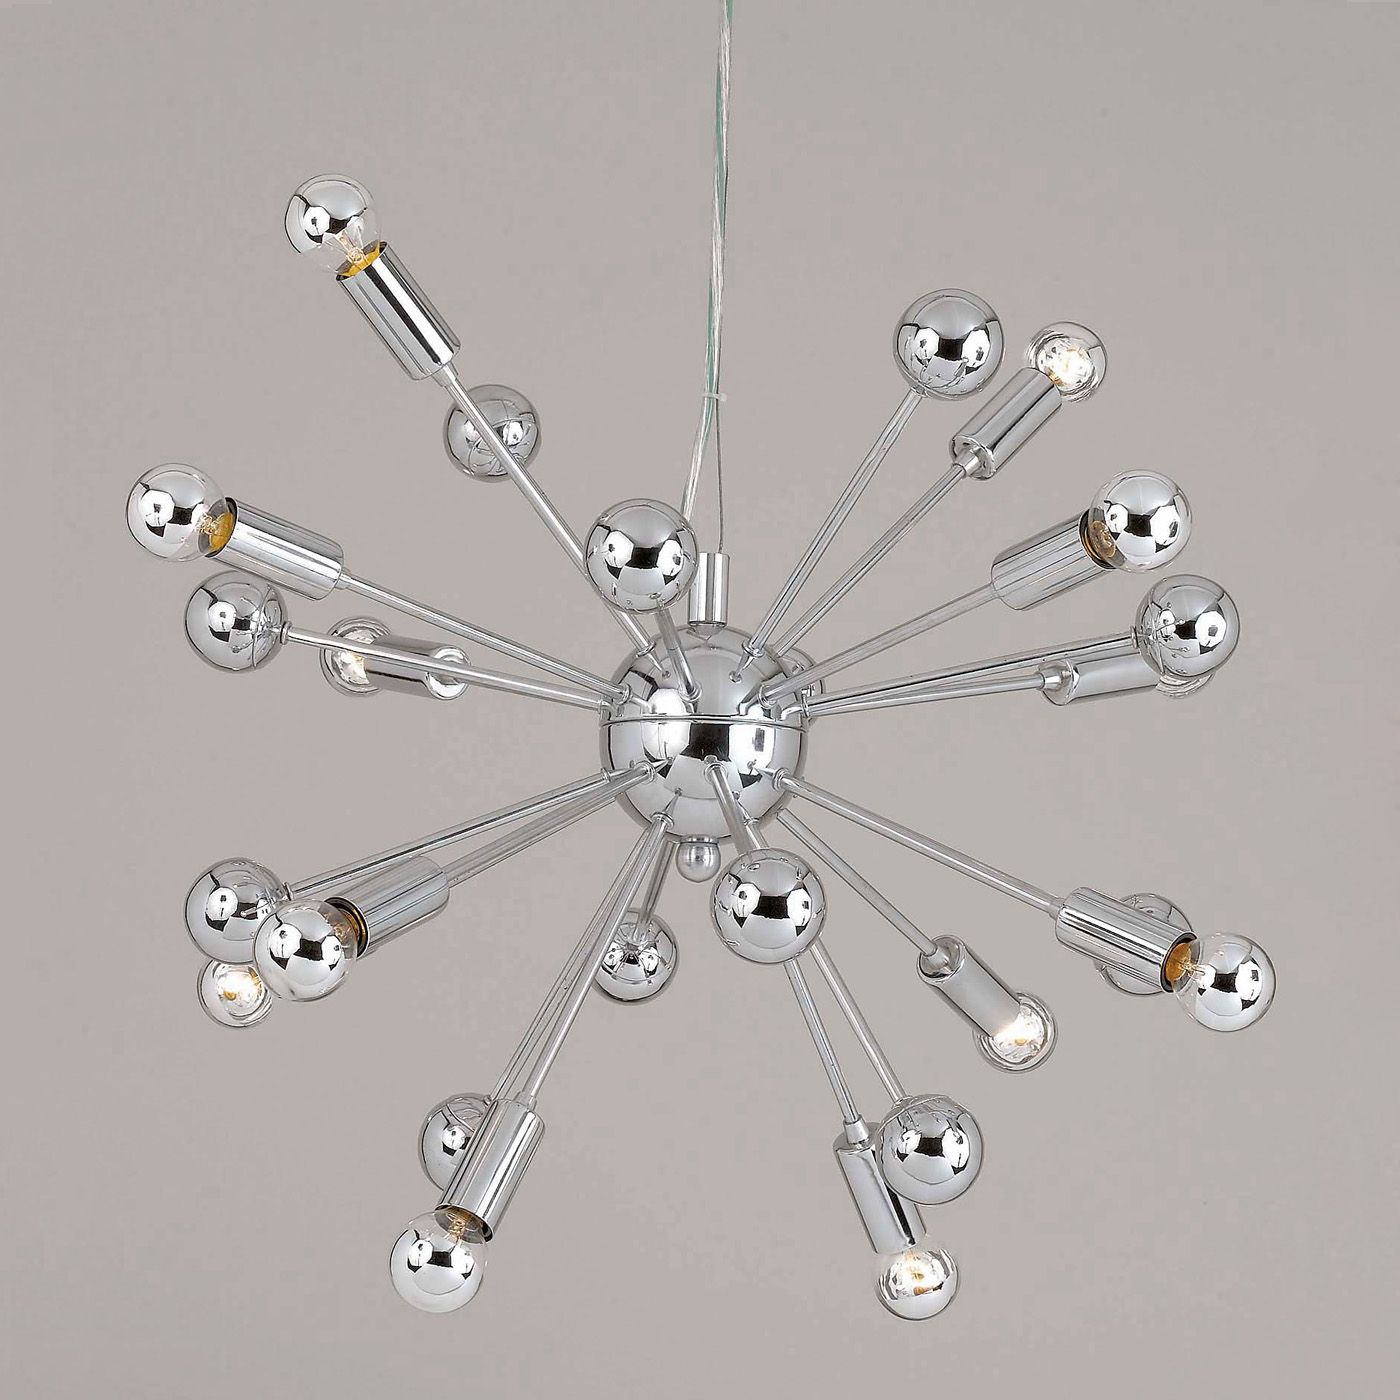 AF Lighting 5695-12H 12 Light Supernova Chandelier, Polished Chrome - Lighting Universe